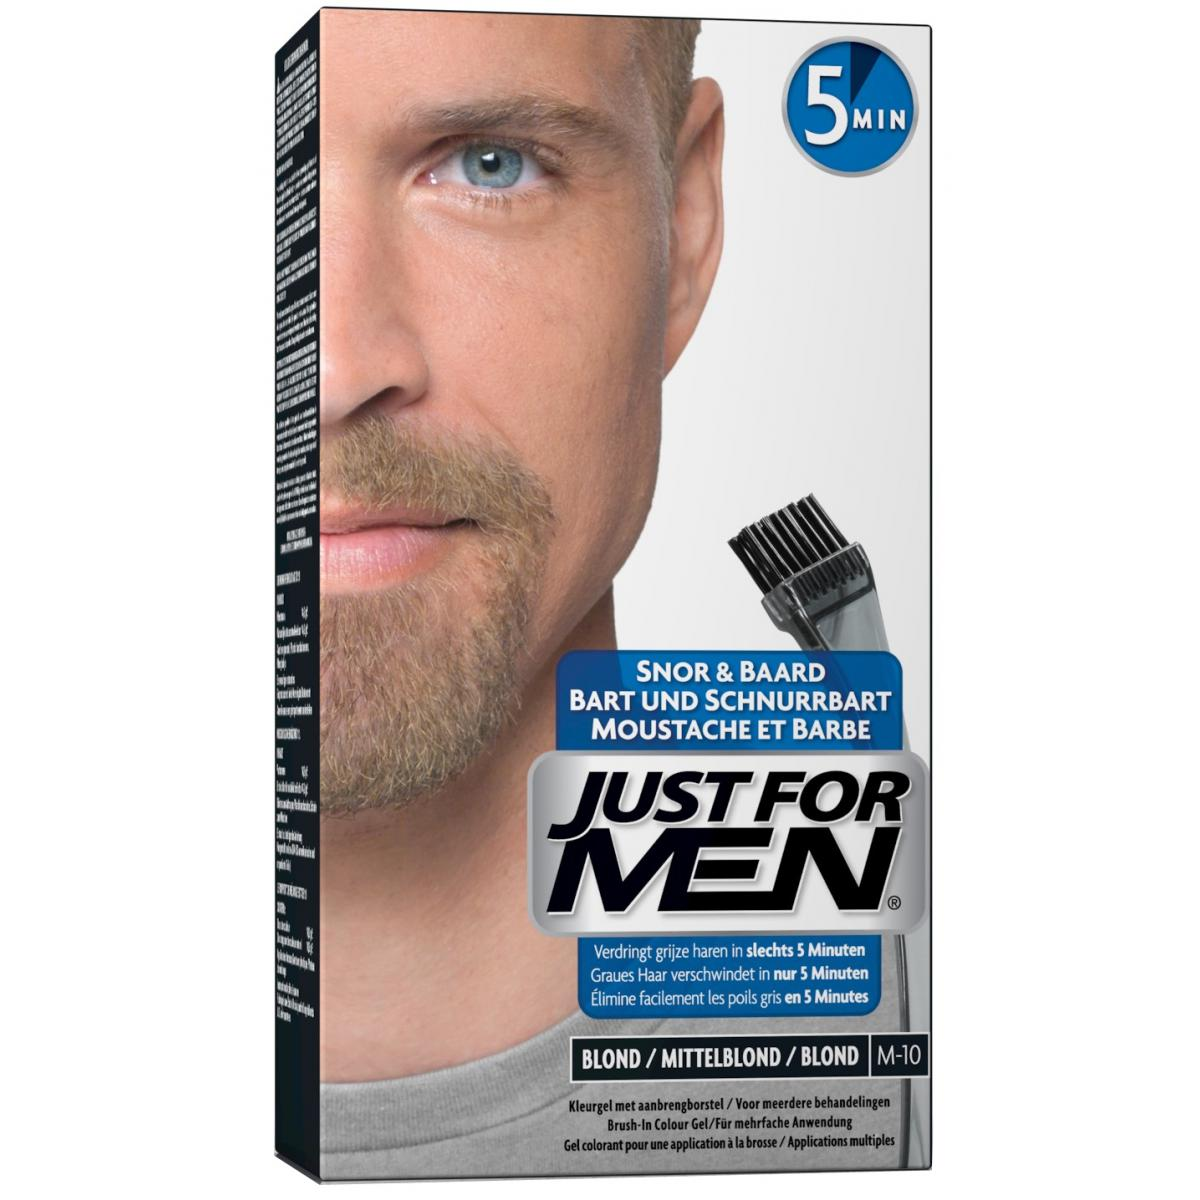 Pack Coloration Barbe Blond Couleur Naturelle & Shampoing à barbe